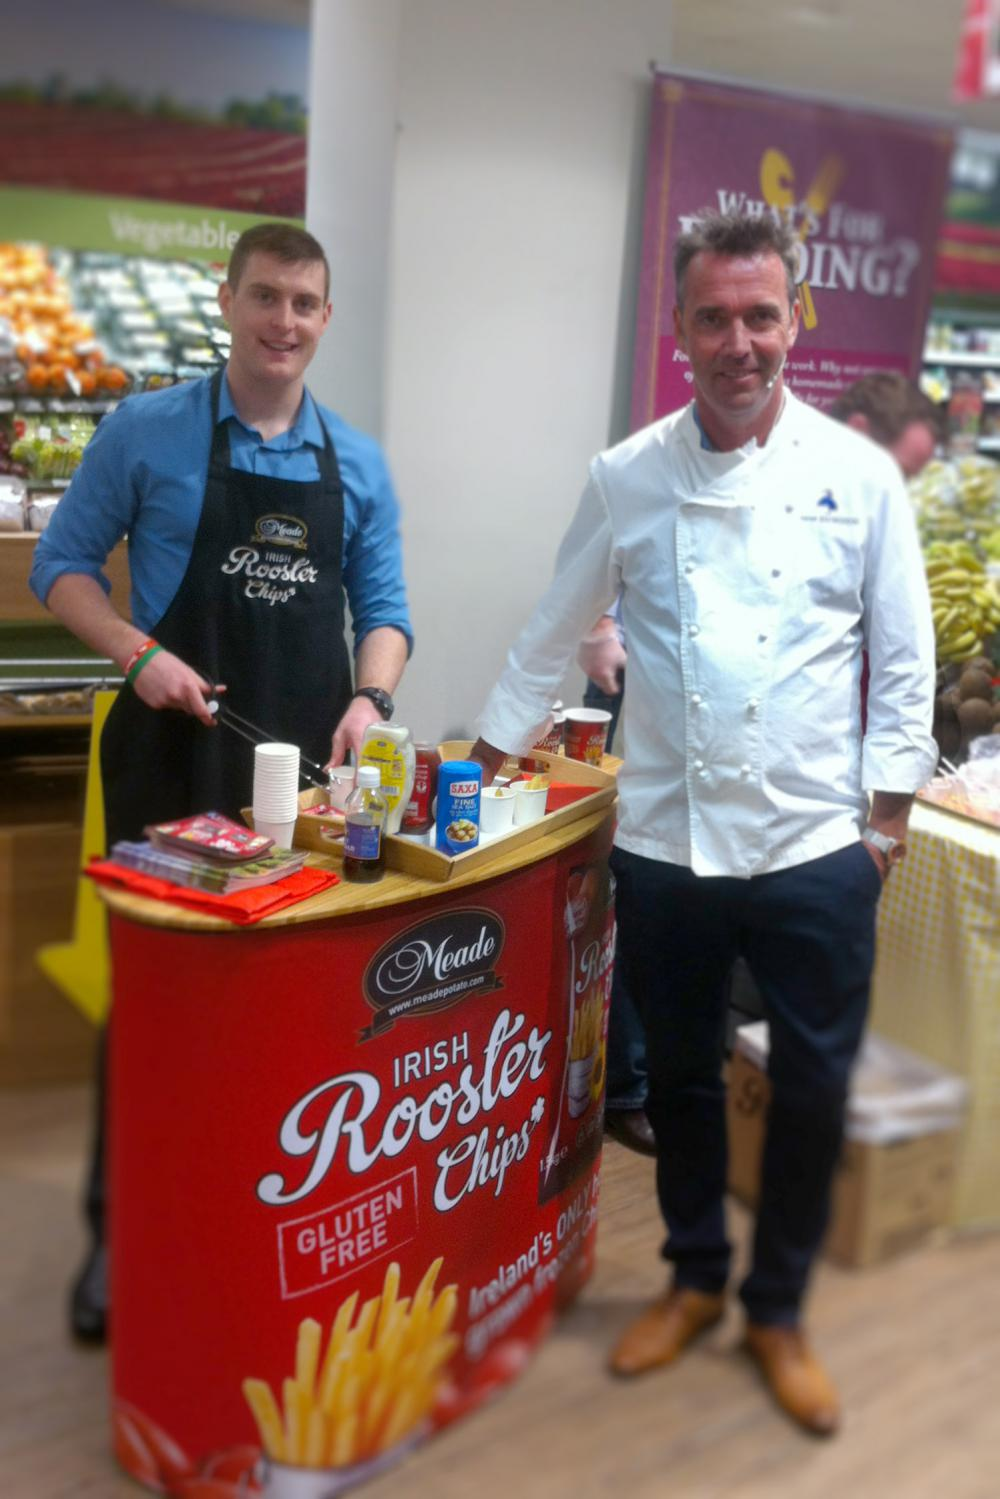 Kevin Dundon at a tasting - another fan!